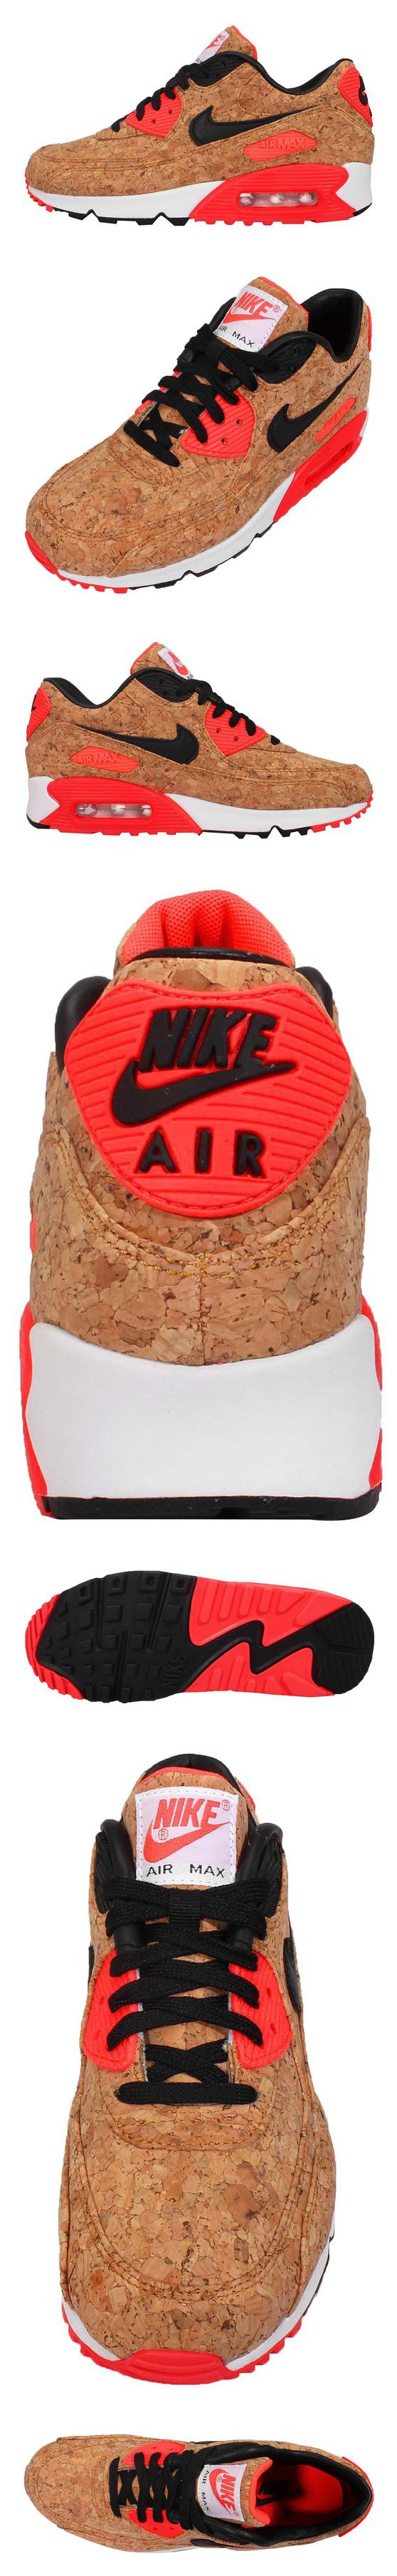 Nike Air Max 90 Infrared 2015 Le Site